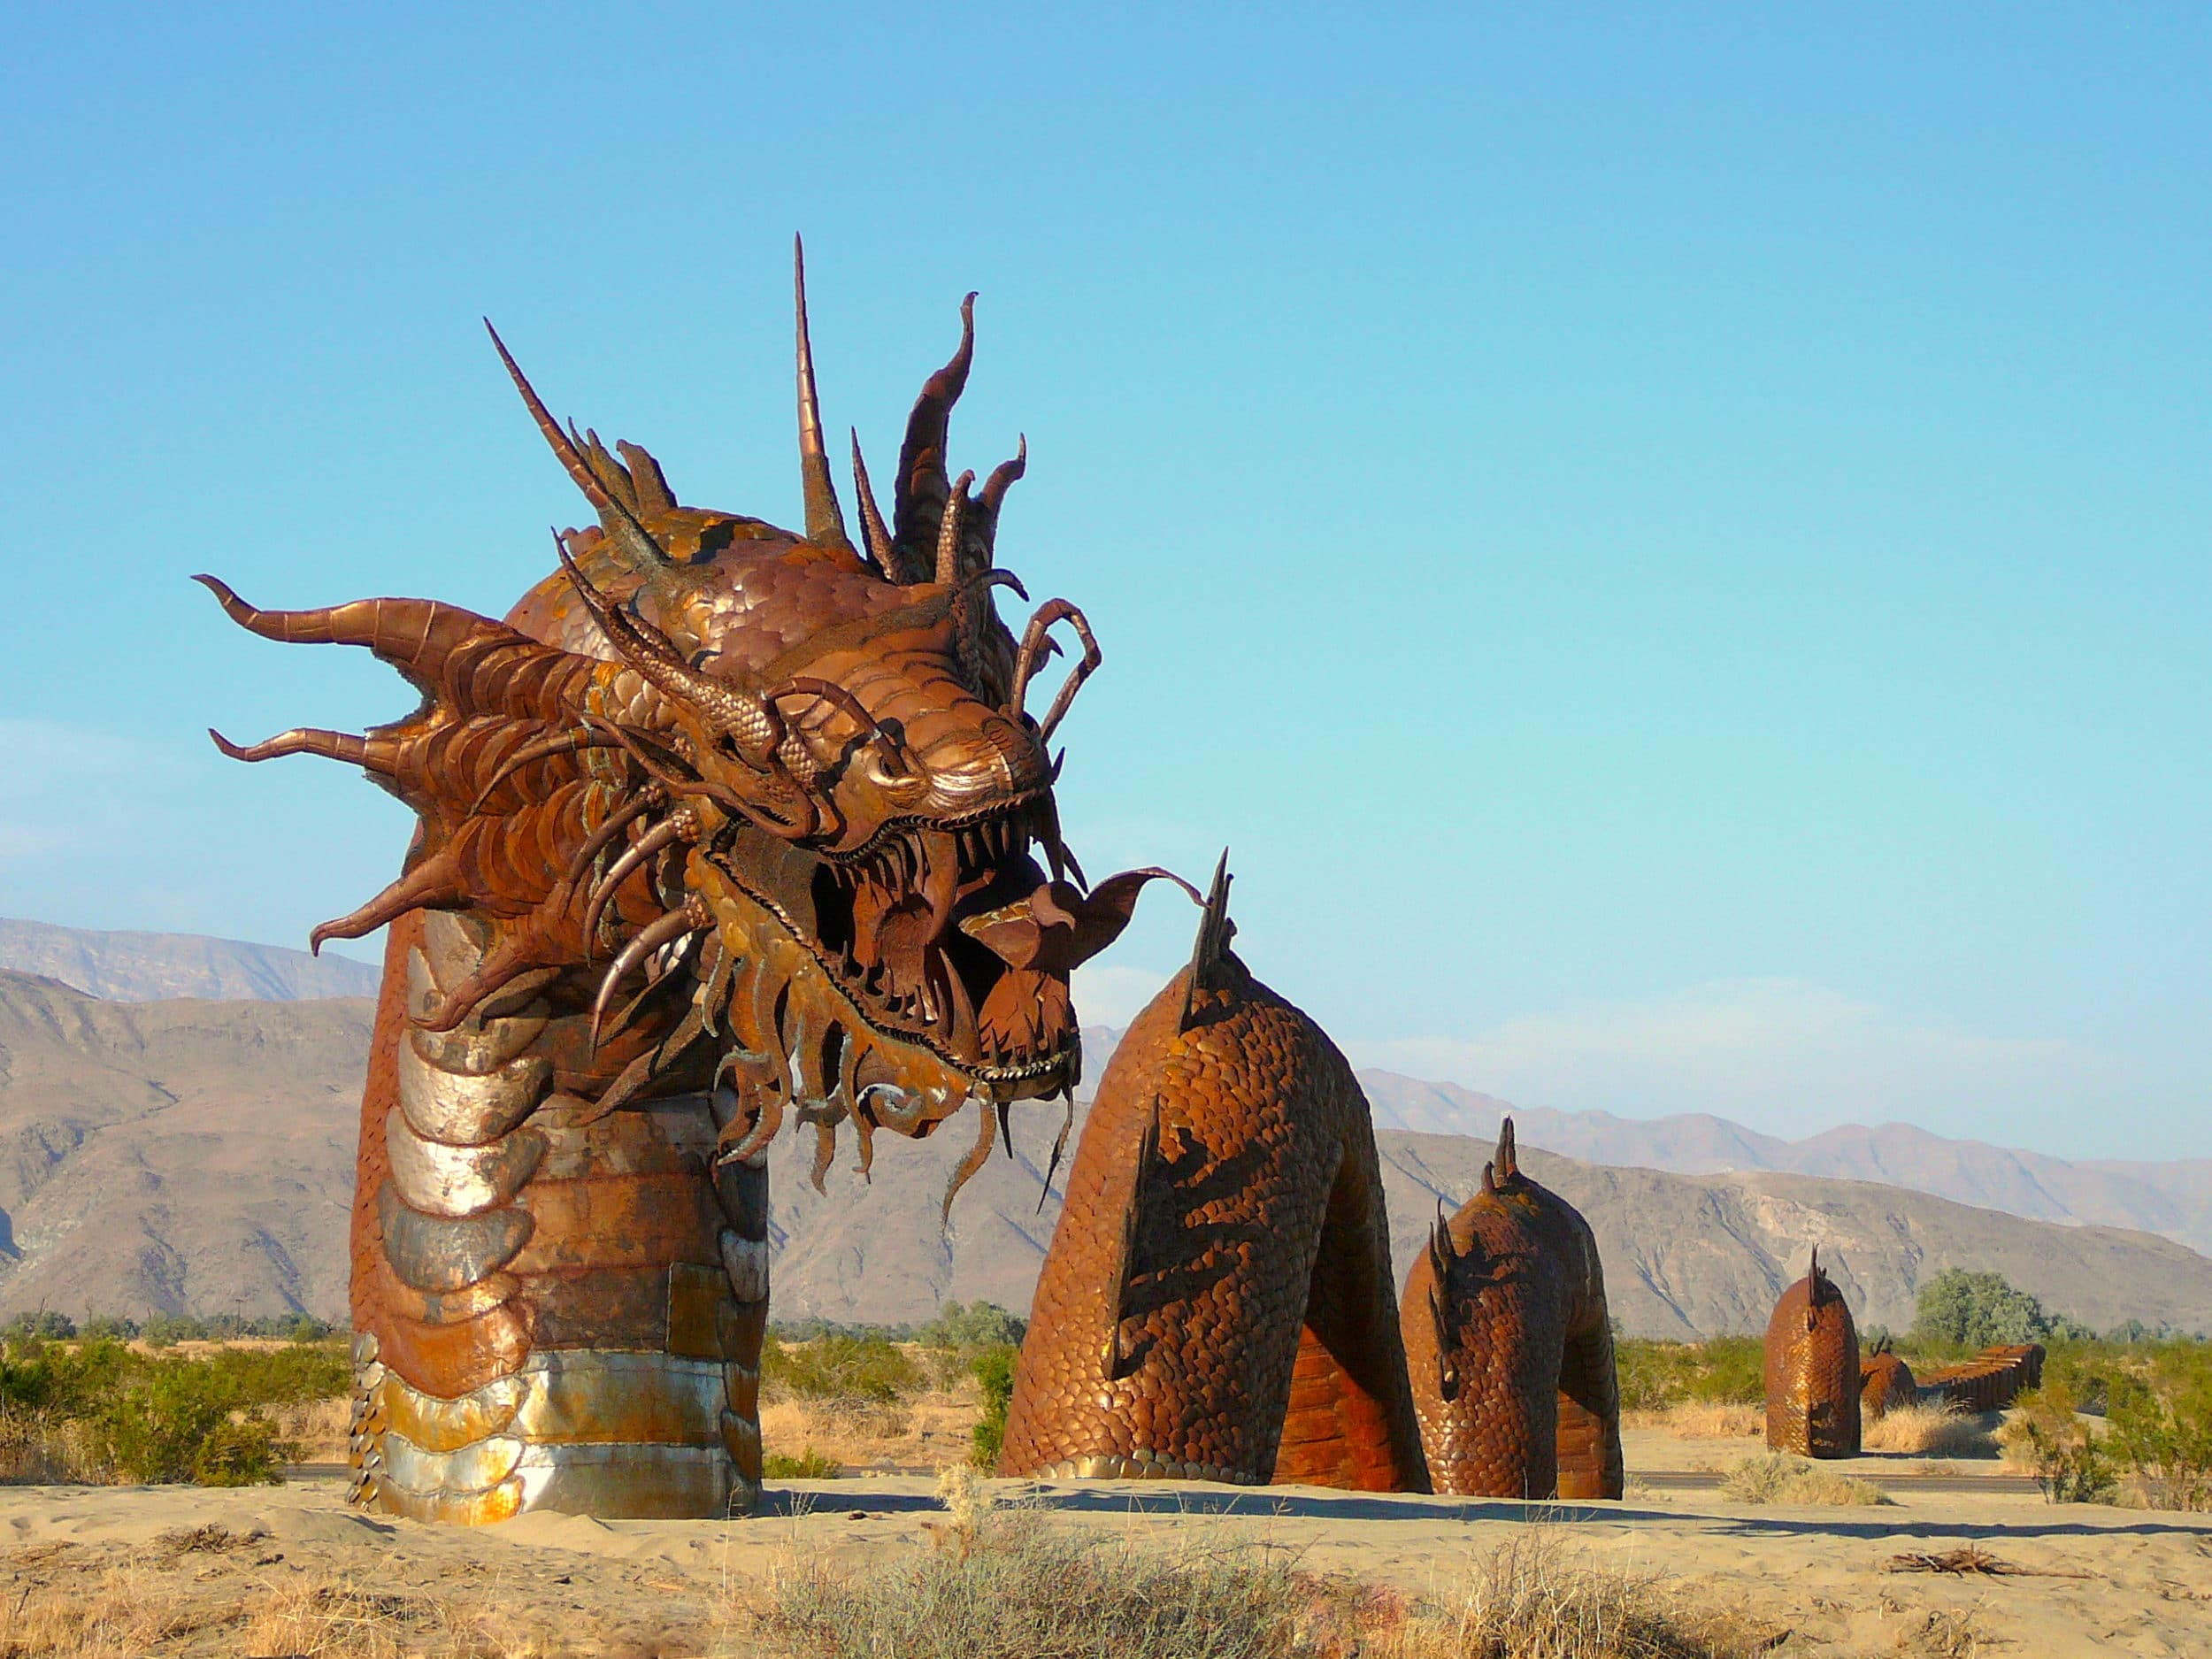 Check out the various metal sculptures in the Borrego Valley, near Anza-Borrego Desert State Park